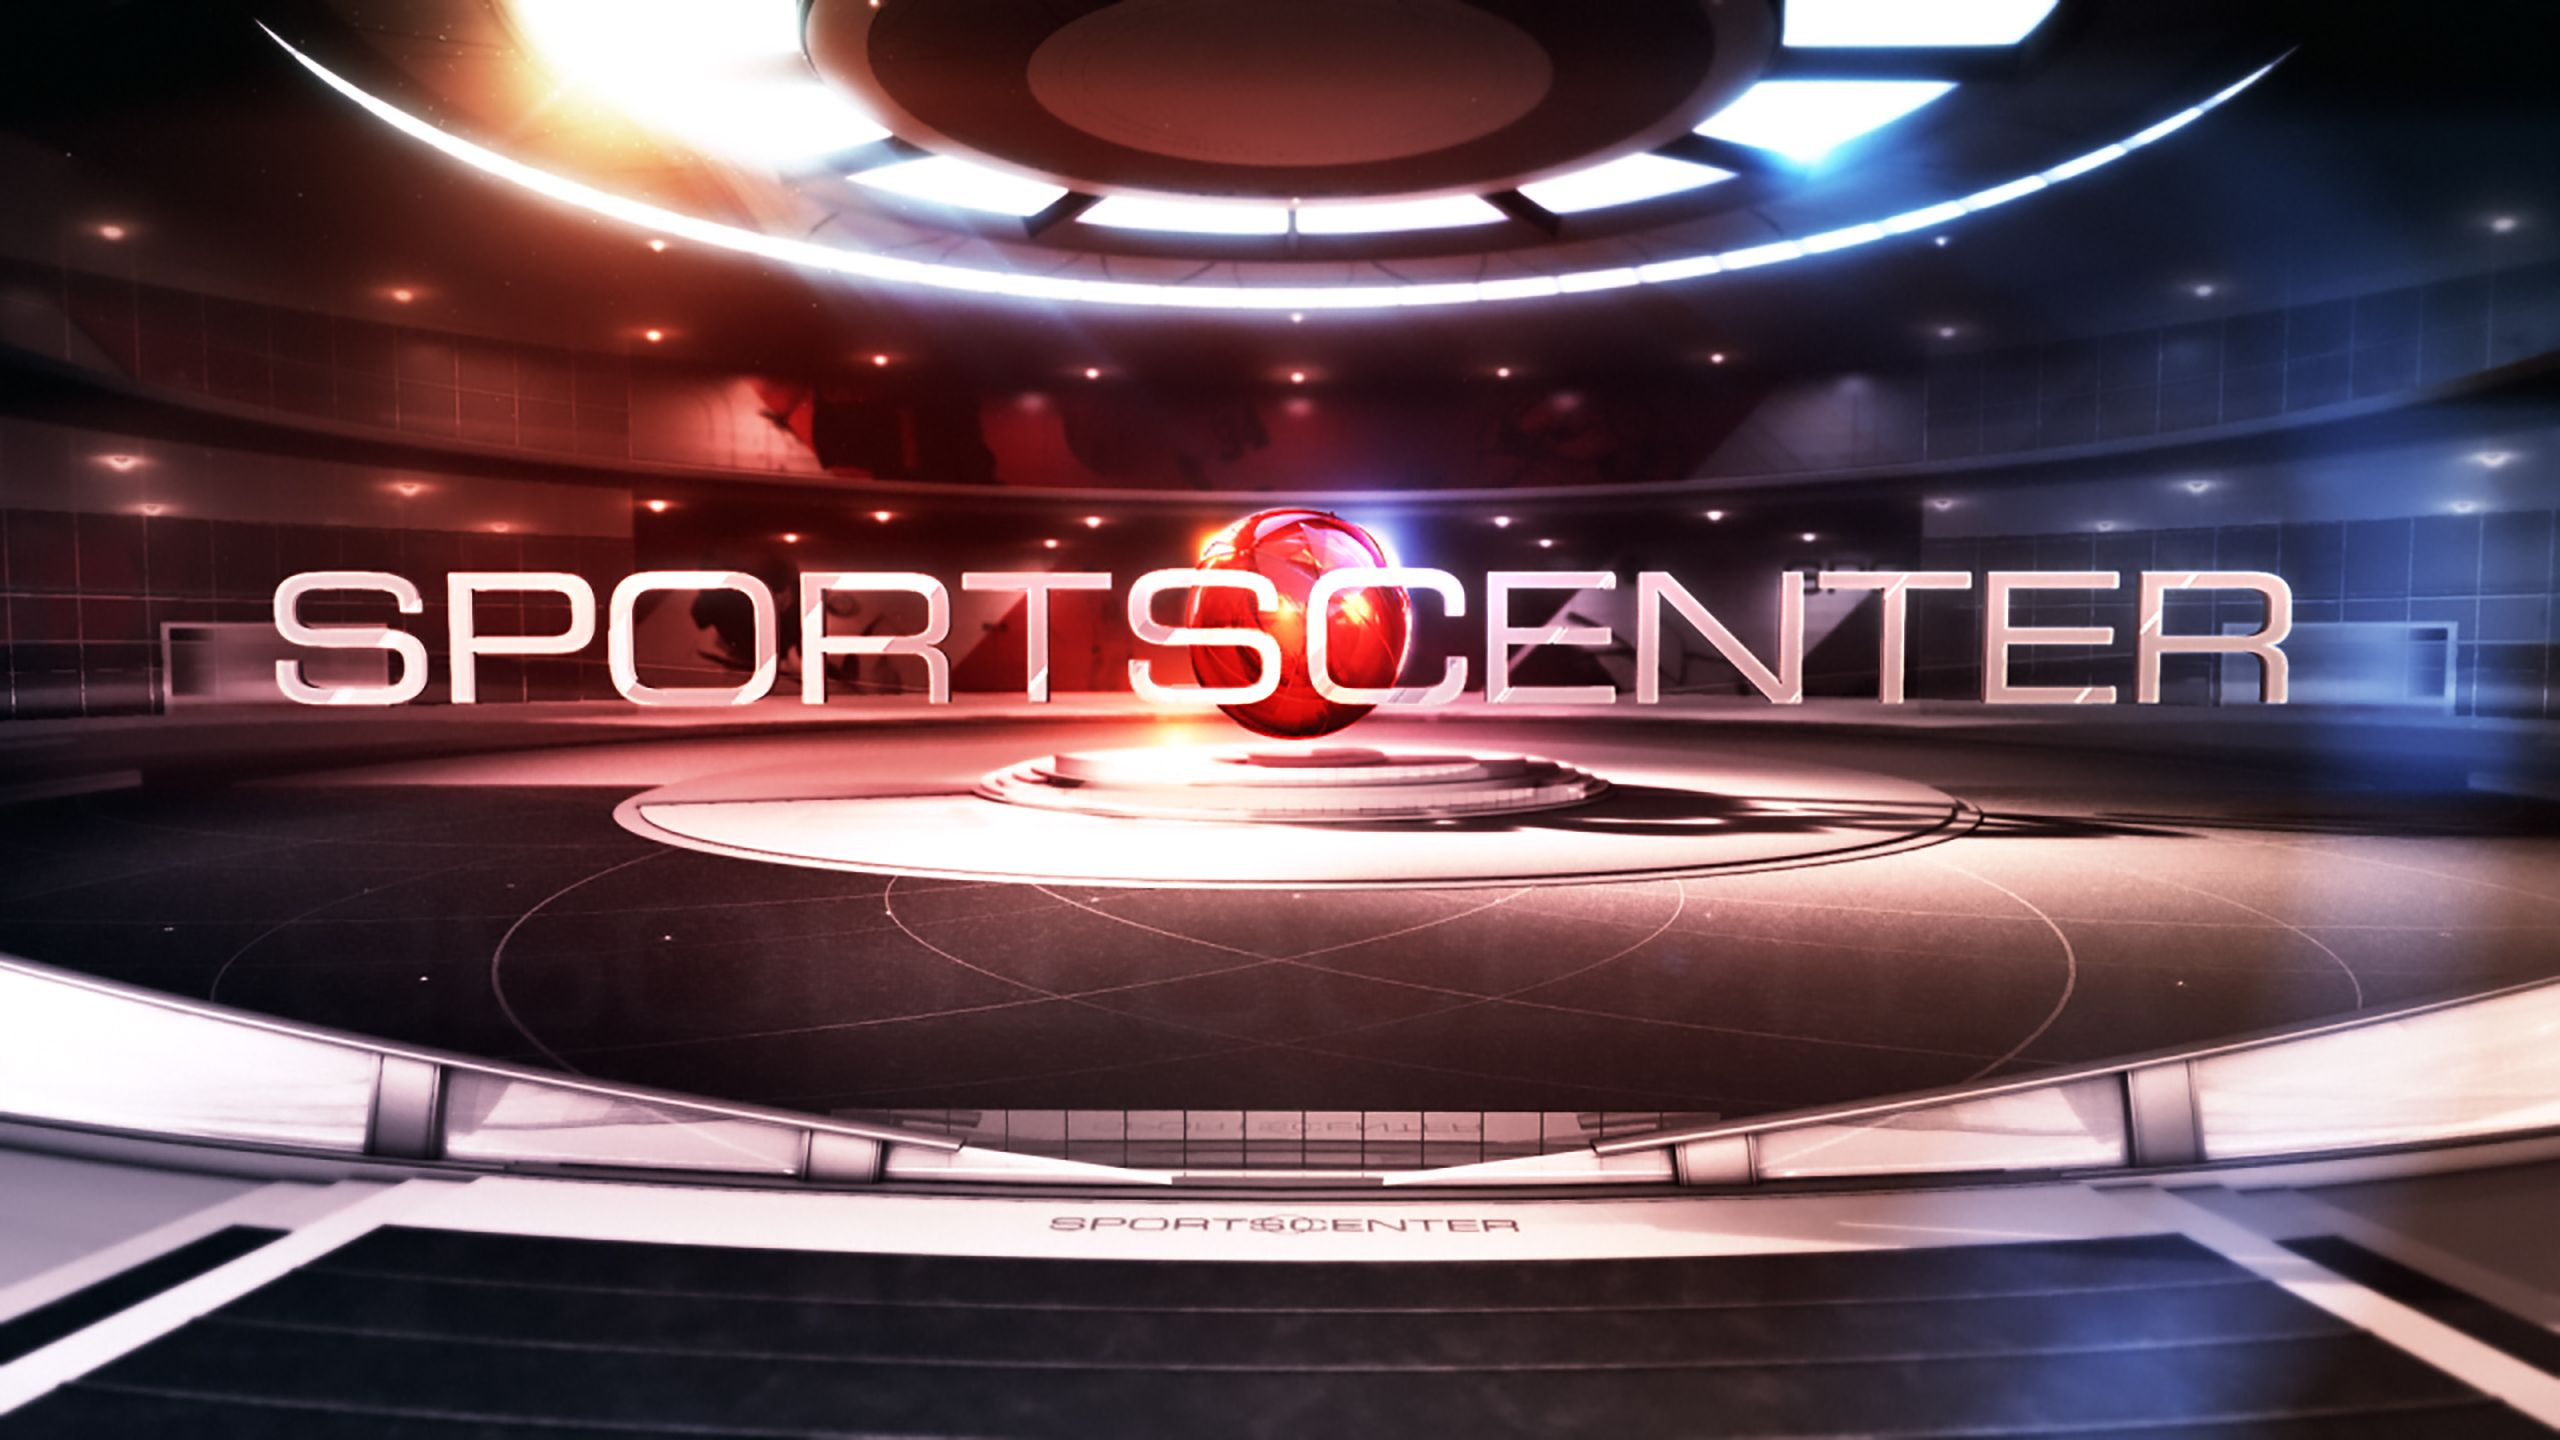 SportsCenter: Presentado por Jim Beam